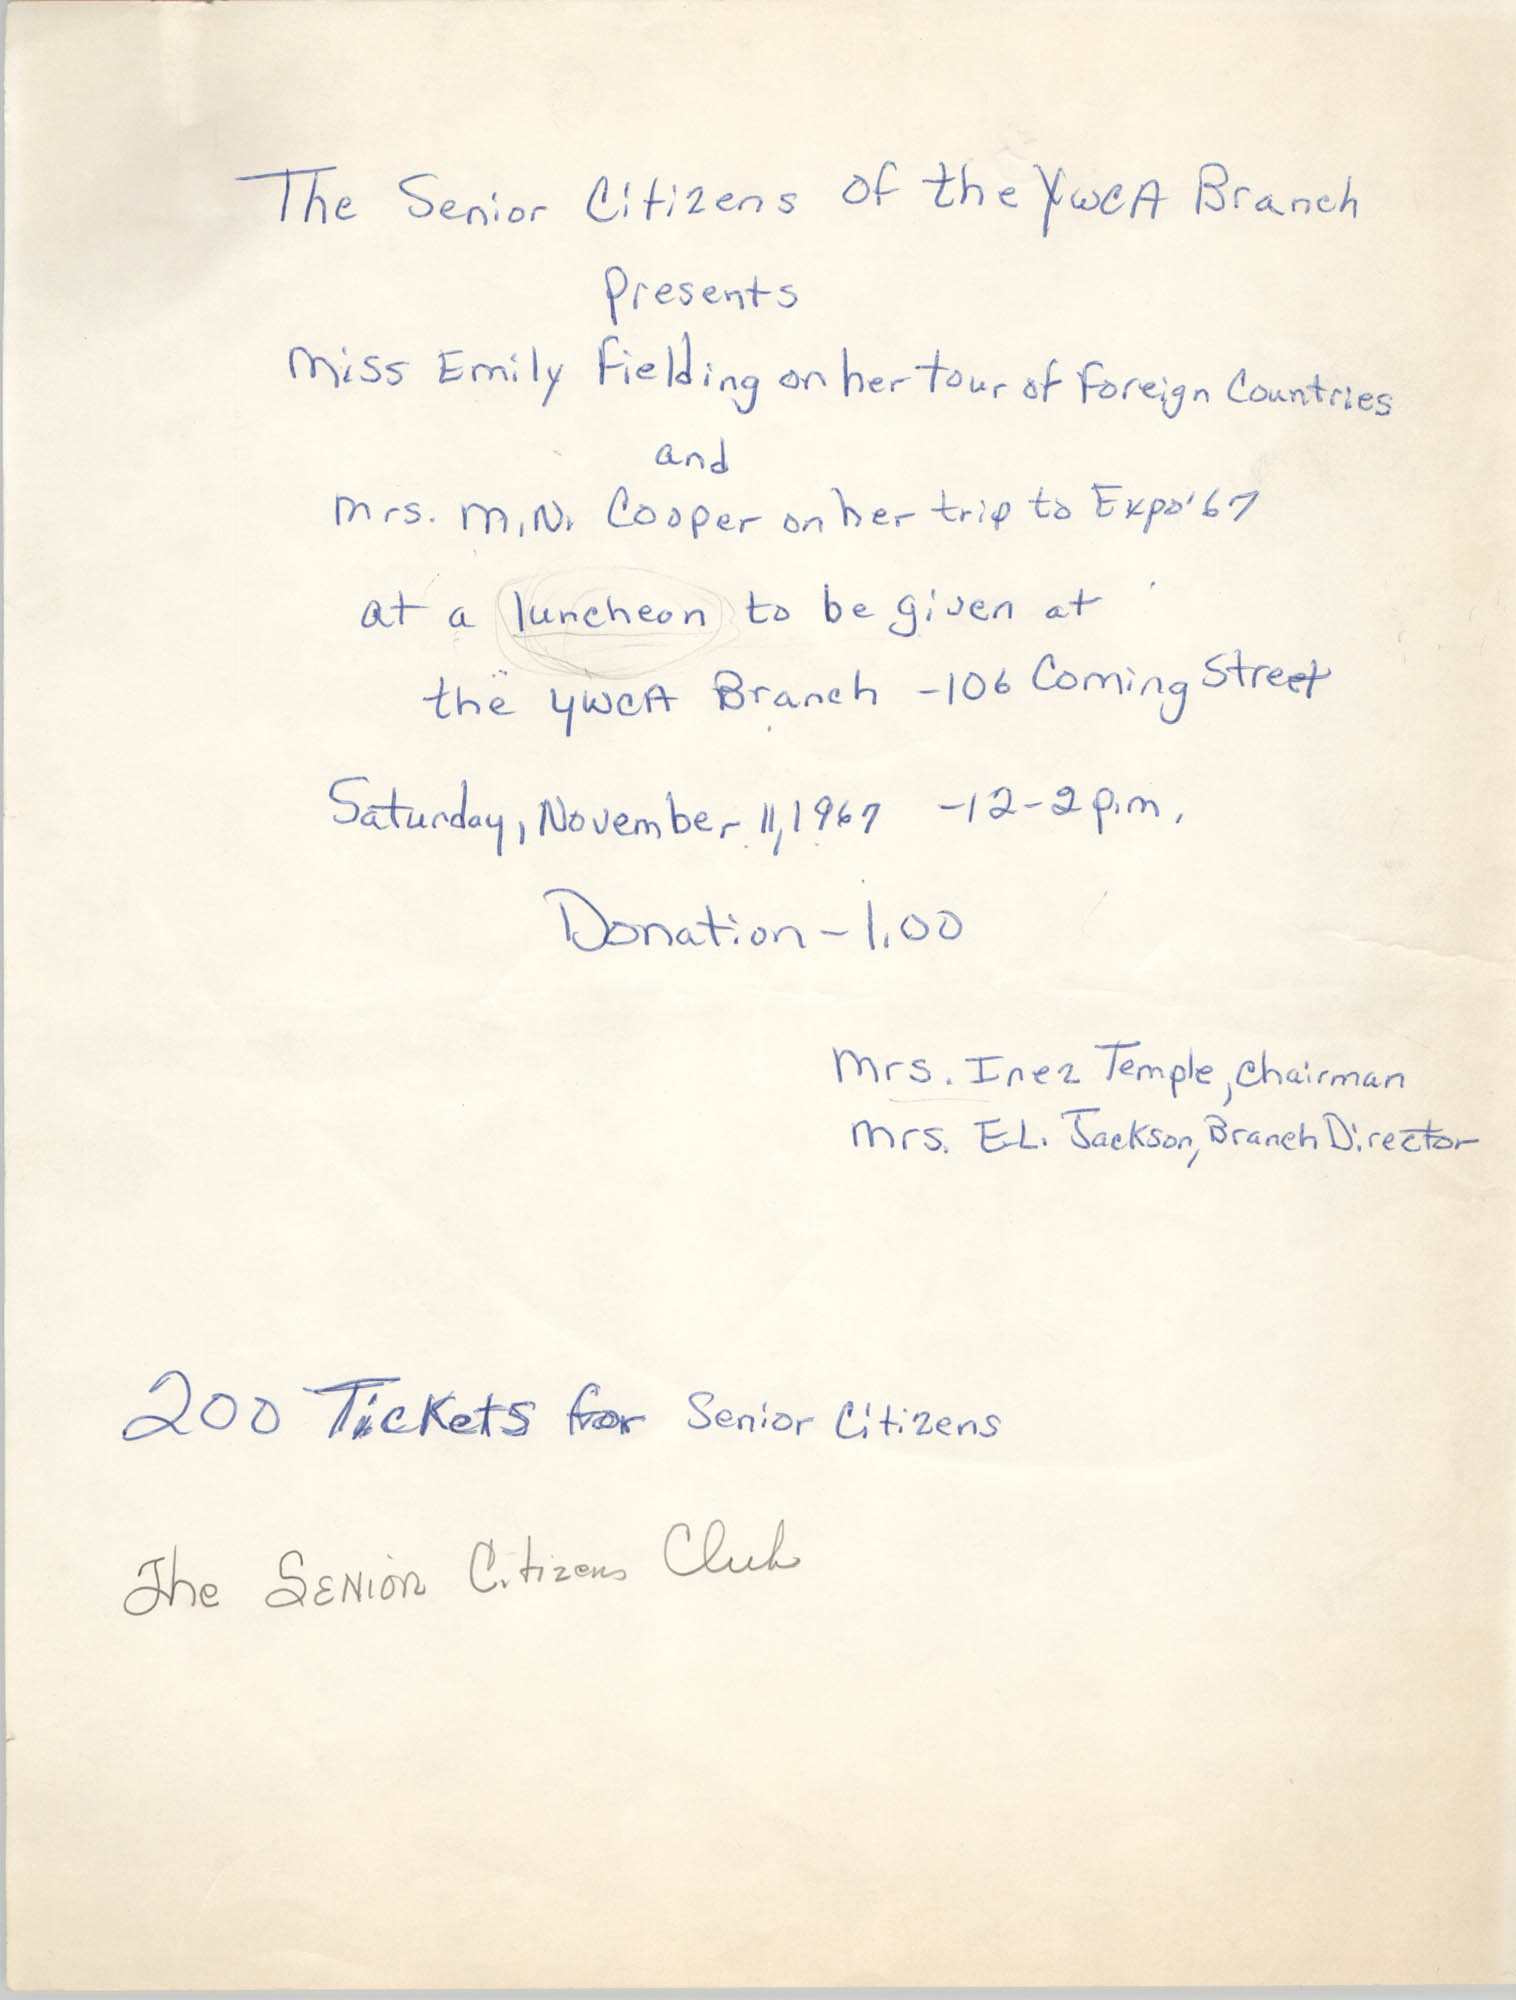 Flyer, Y.W.C.A. Senior Citizen's Club Luncheon, Coming Street Y.W.C.A., November 11, 1967